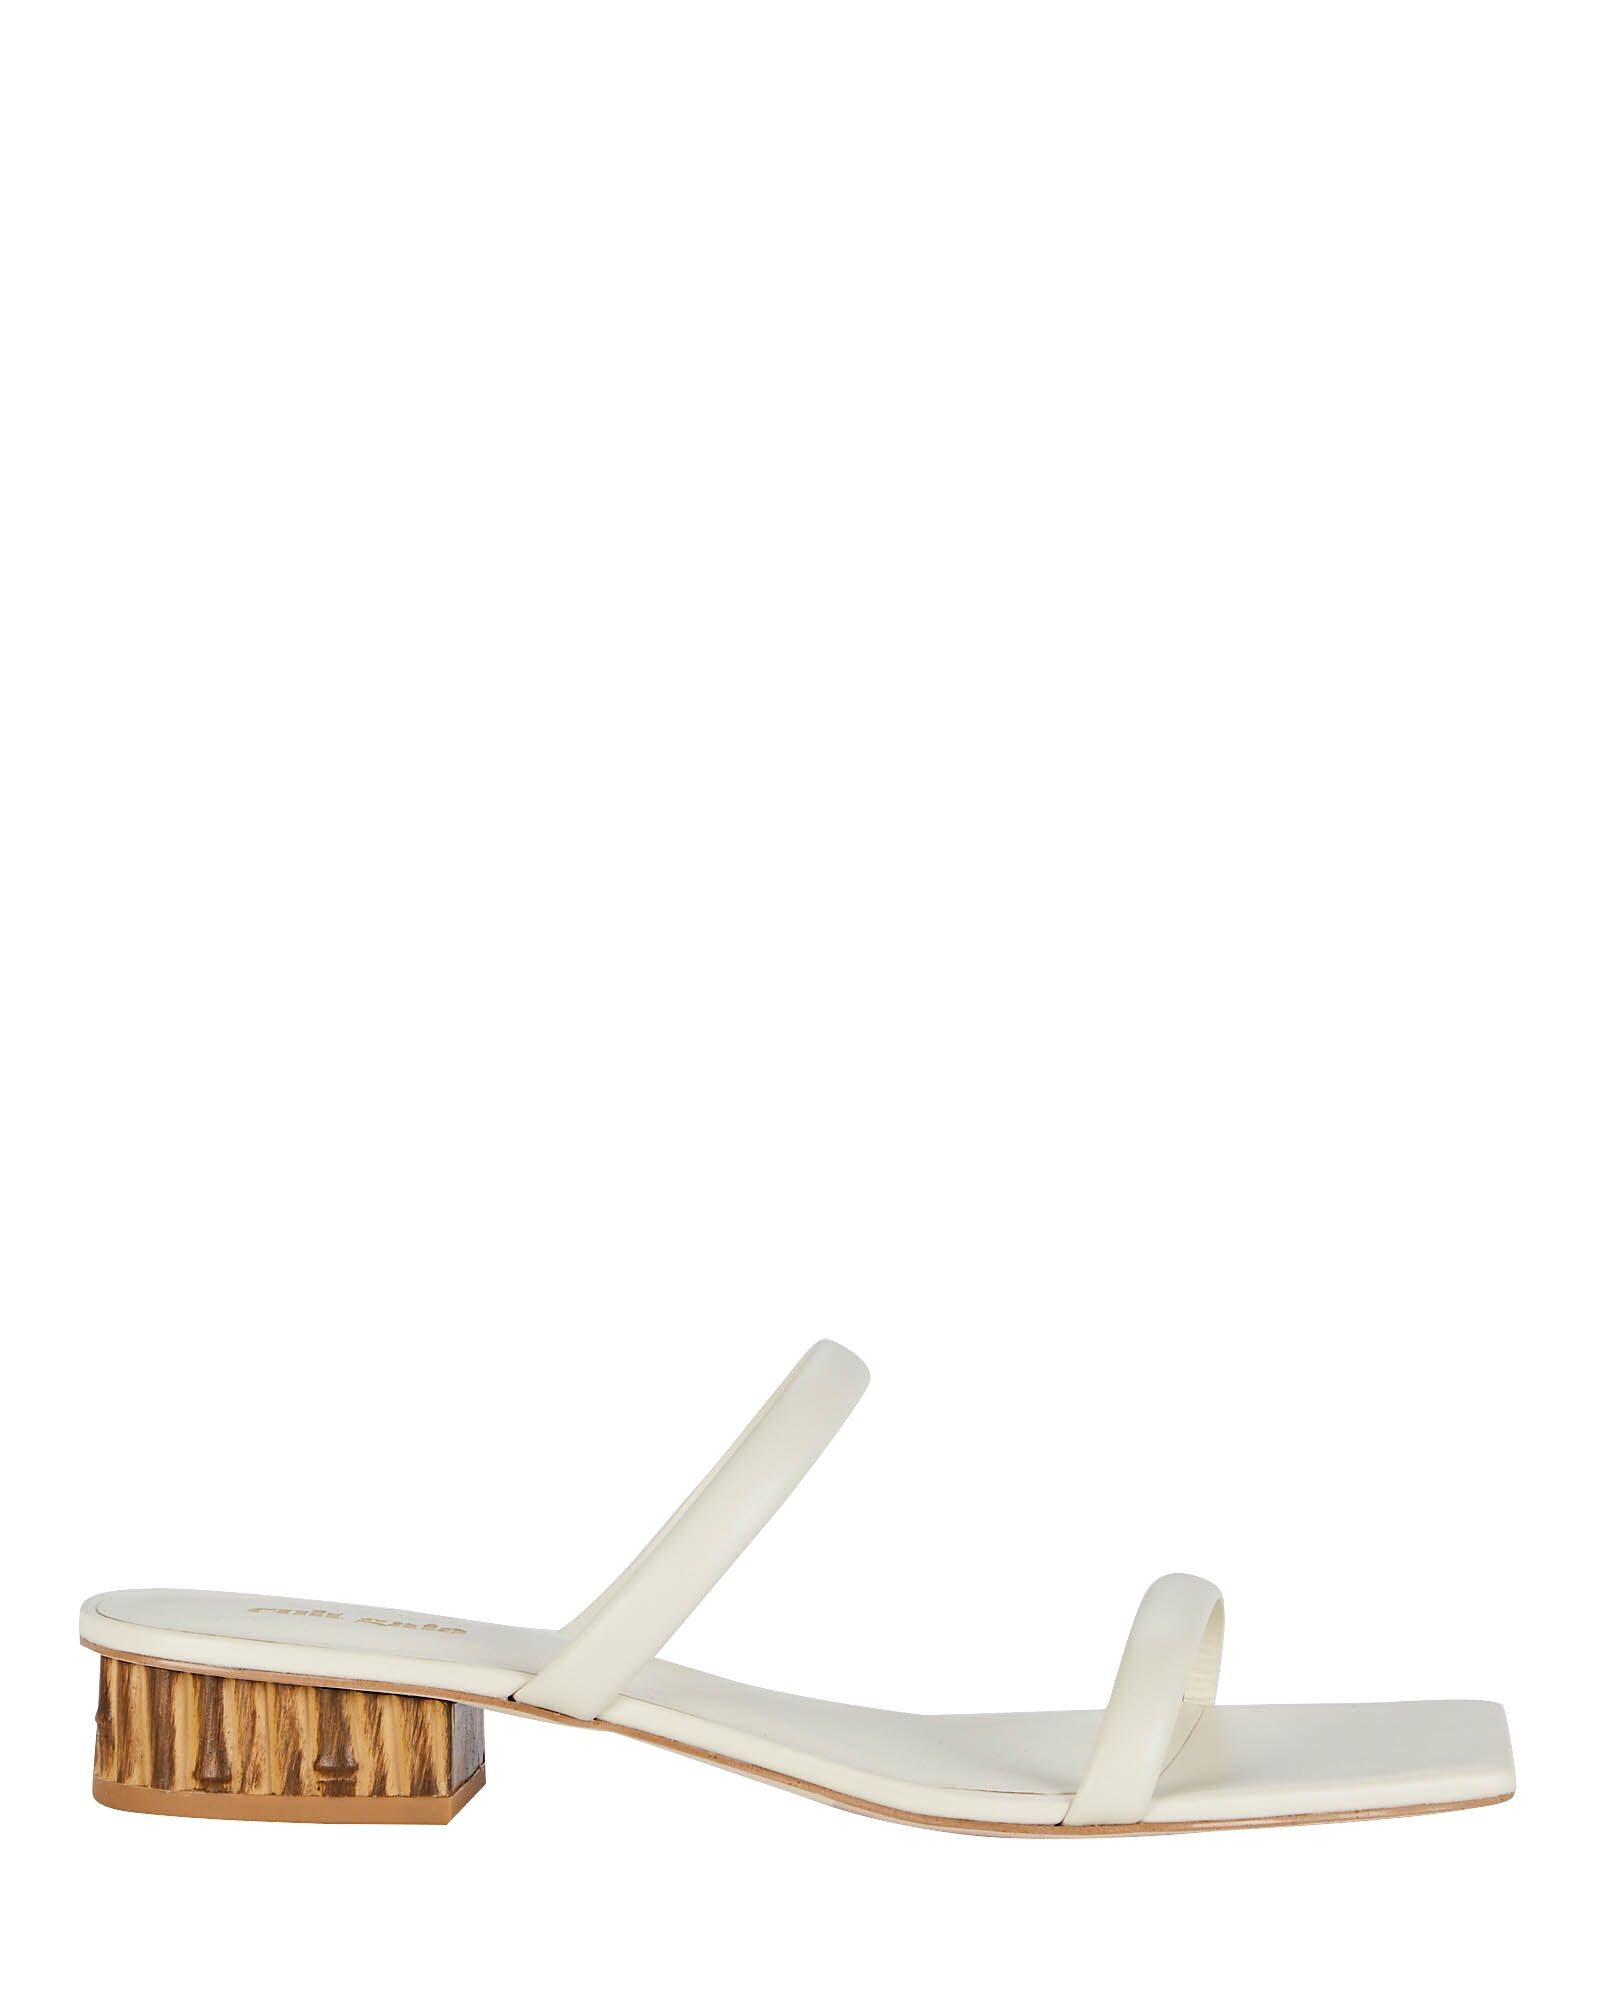 Liz Leather Slide Sandals, WHITE, hi-res